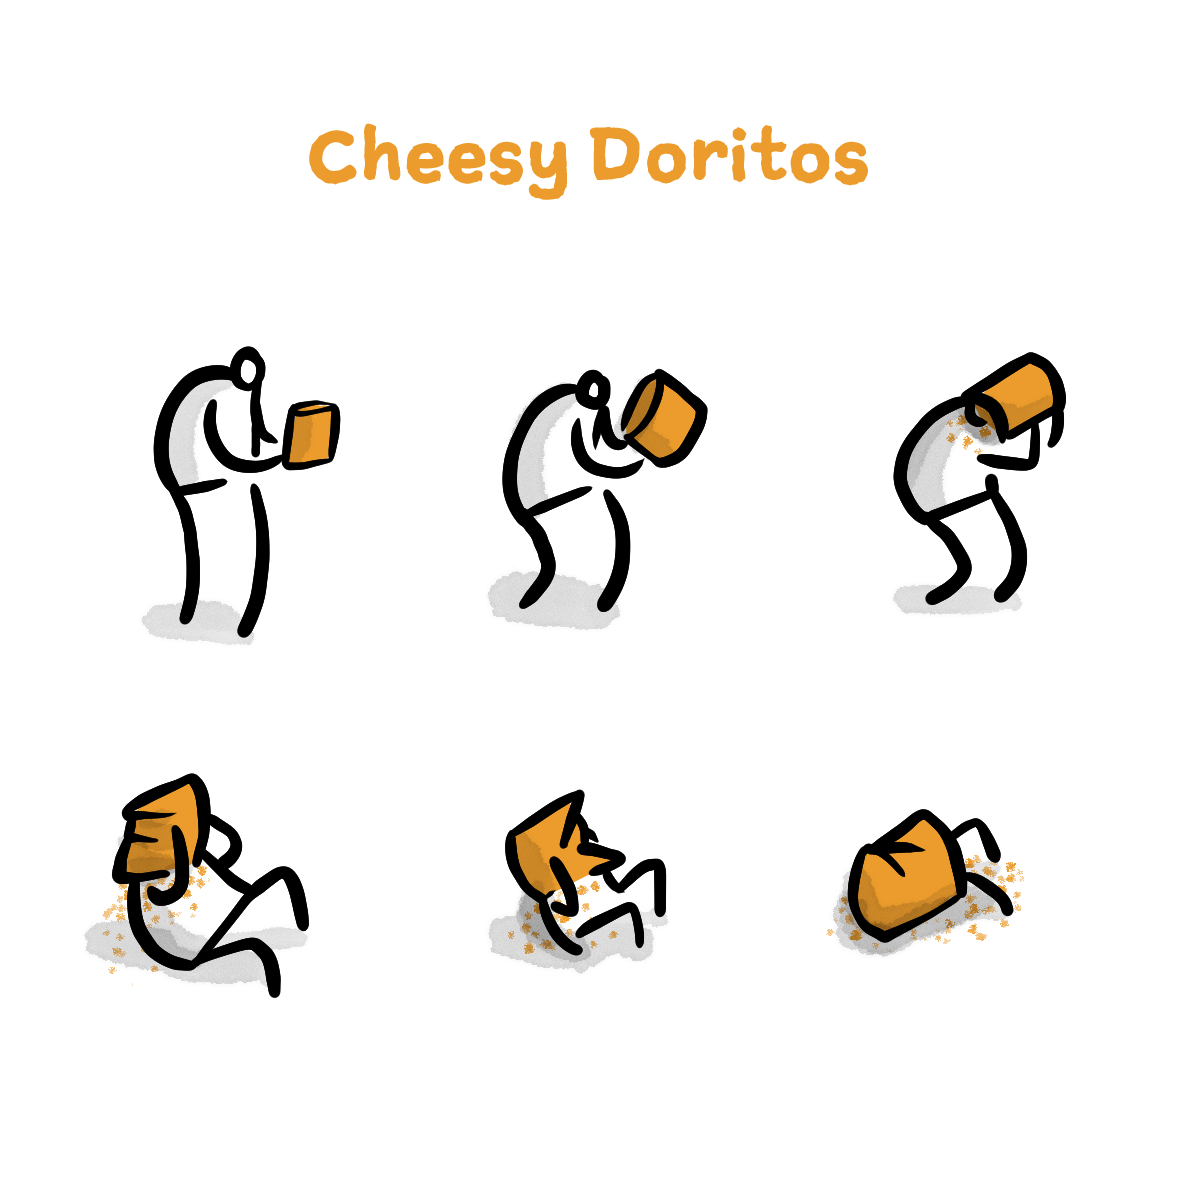 cheesy doritos.jpg